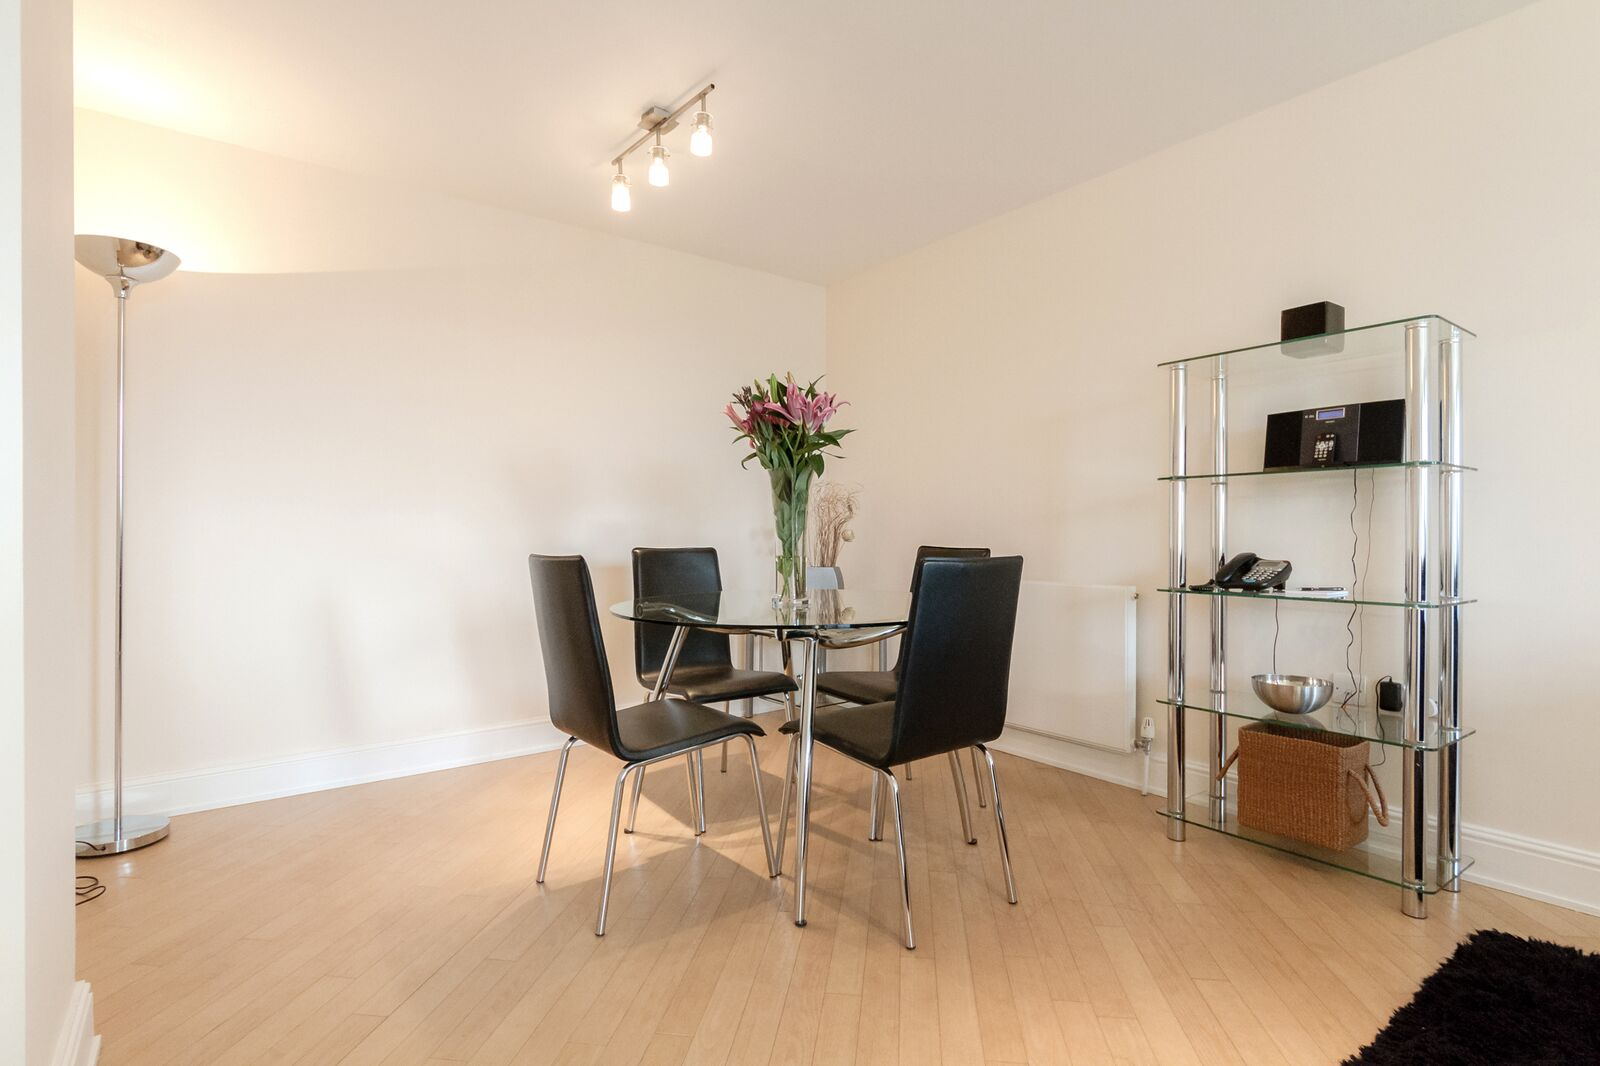 Modern-Wimbledon-Serviced-Apartments---The-Courtyard---Book-Now-With-Urban-Stay-For-The-Best-Rates-Guaranteed!!!---Free-Wi-Fi---Weekly-CleanModern-Wimbledon-Serviced-Apartments---The-Courtyard---Book-Now-With-Urban-Stay-For-The-Best-Rates-Guaranteed!!!---Free-Wi-Fi---Weekly-Clean